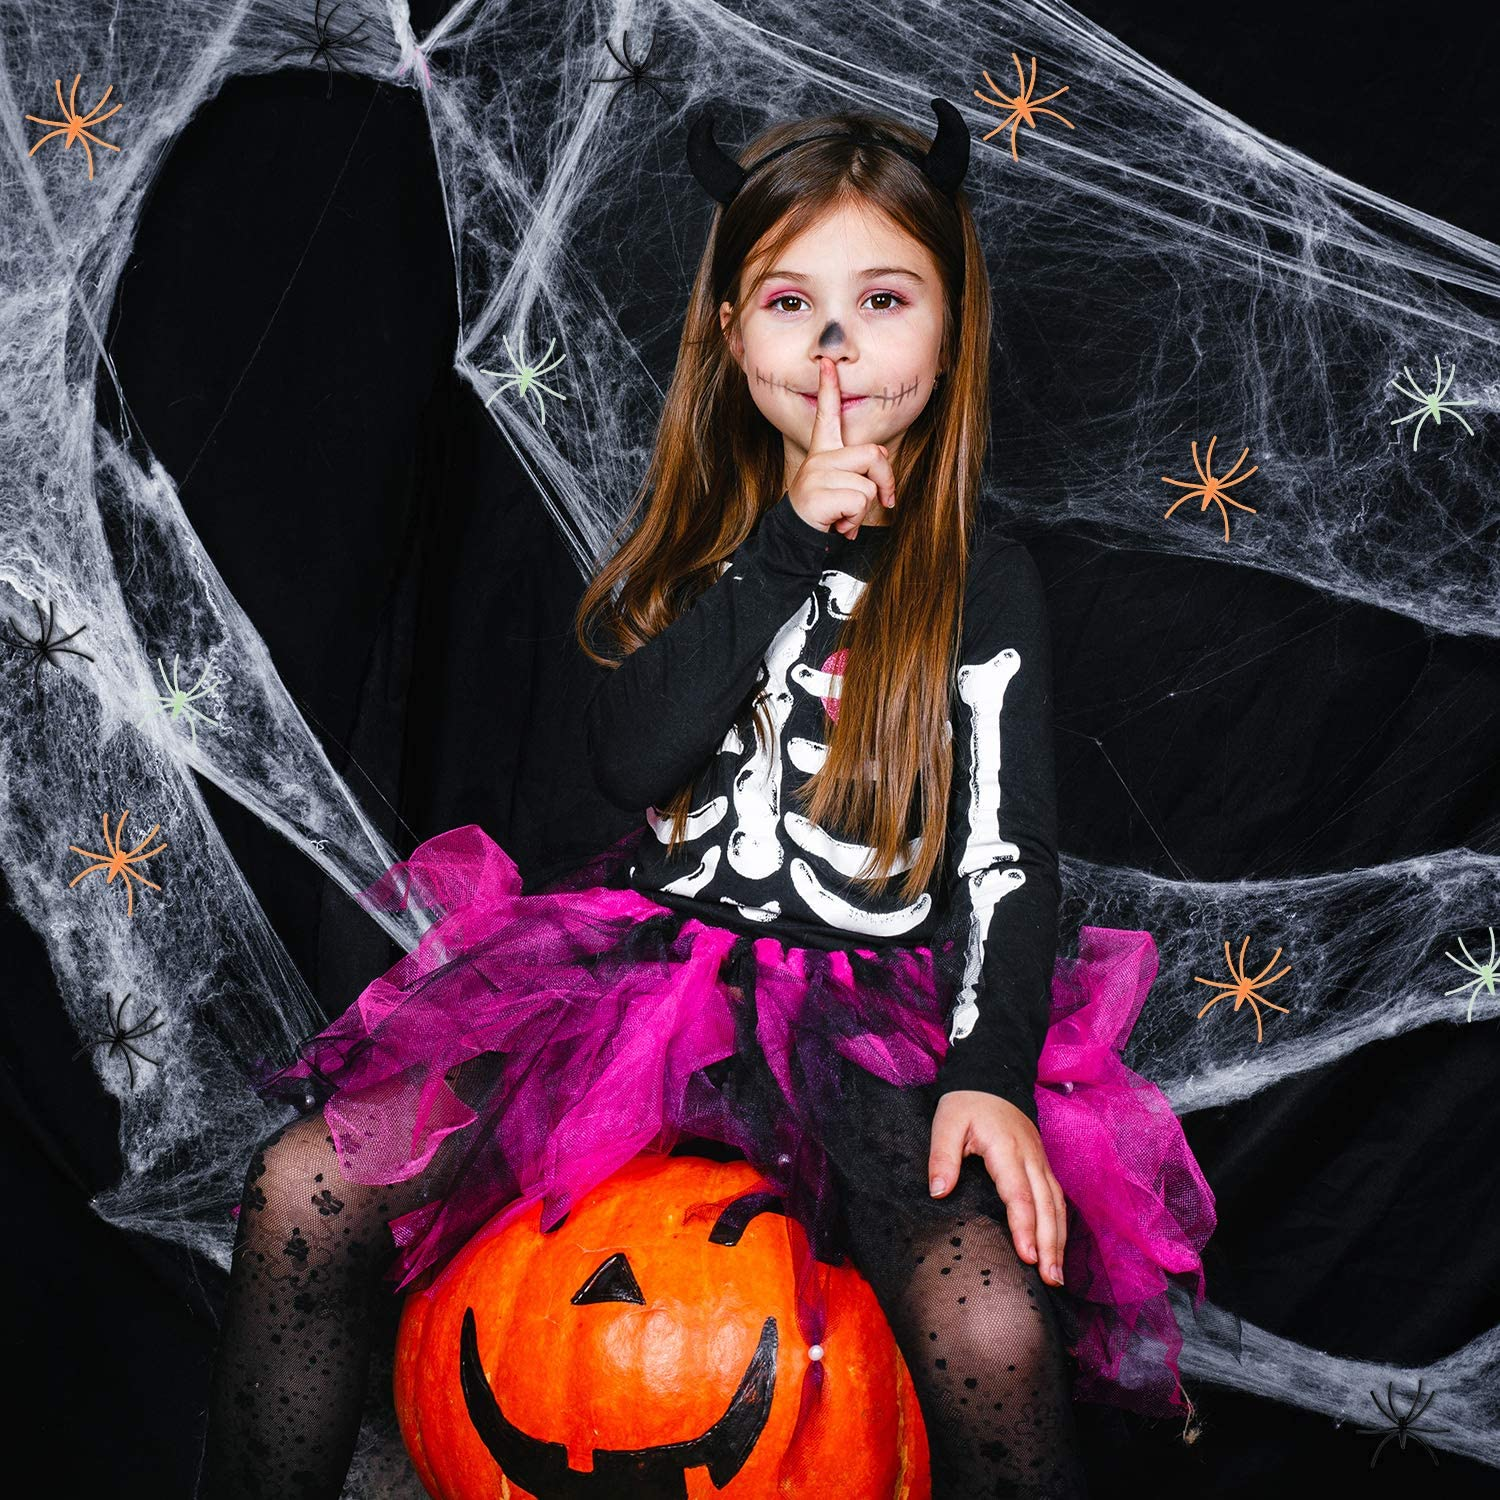 Halloween Spider Webs Fake Cobwebs with Plastic Spiders for Halloween Themed Party Decorations 2 Pieces Spider Webs + 150 Pieces Plastic Spiders